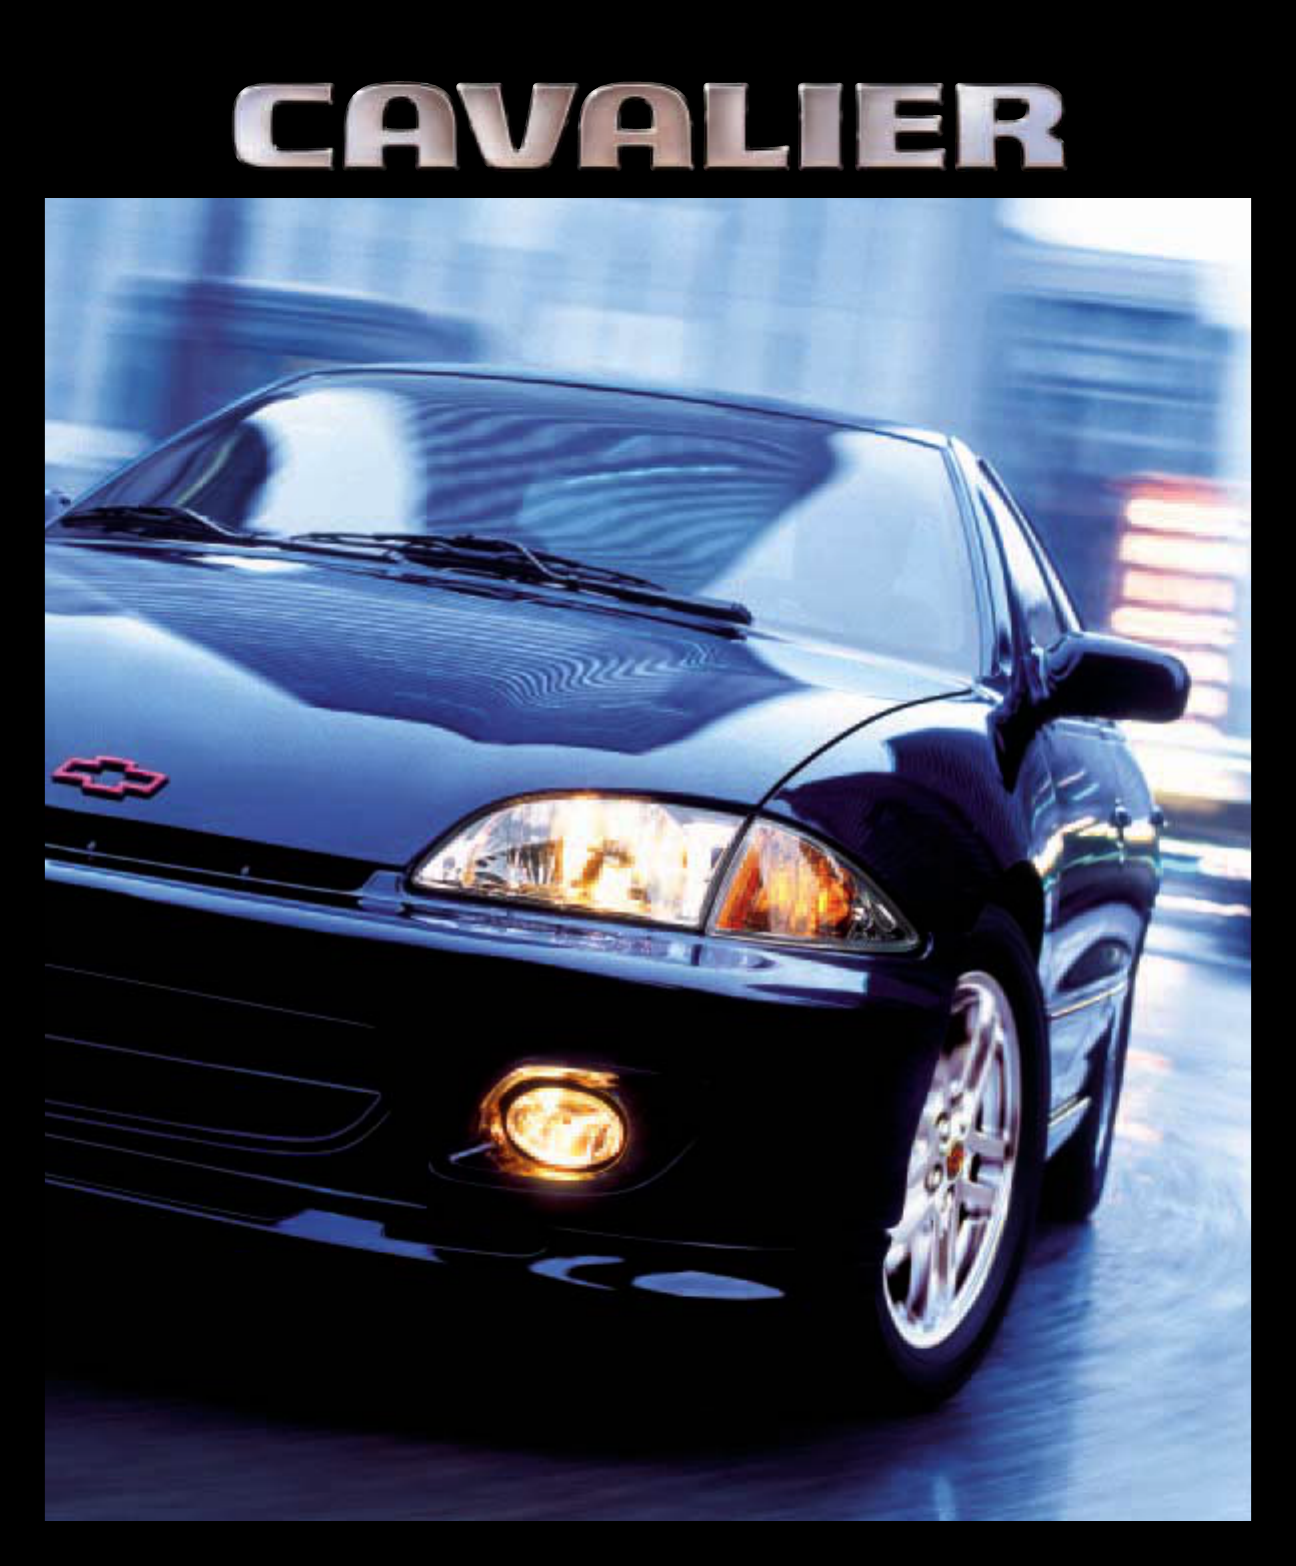 See our other Chevrolet Cavalier Manuals: